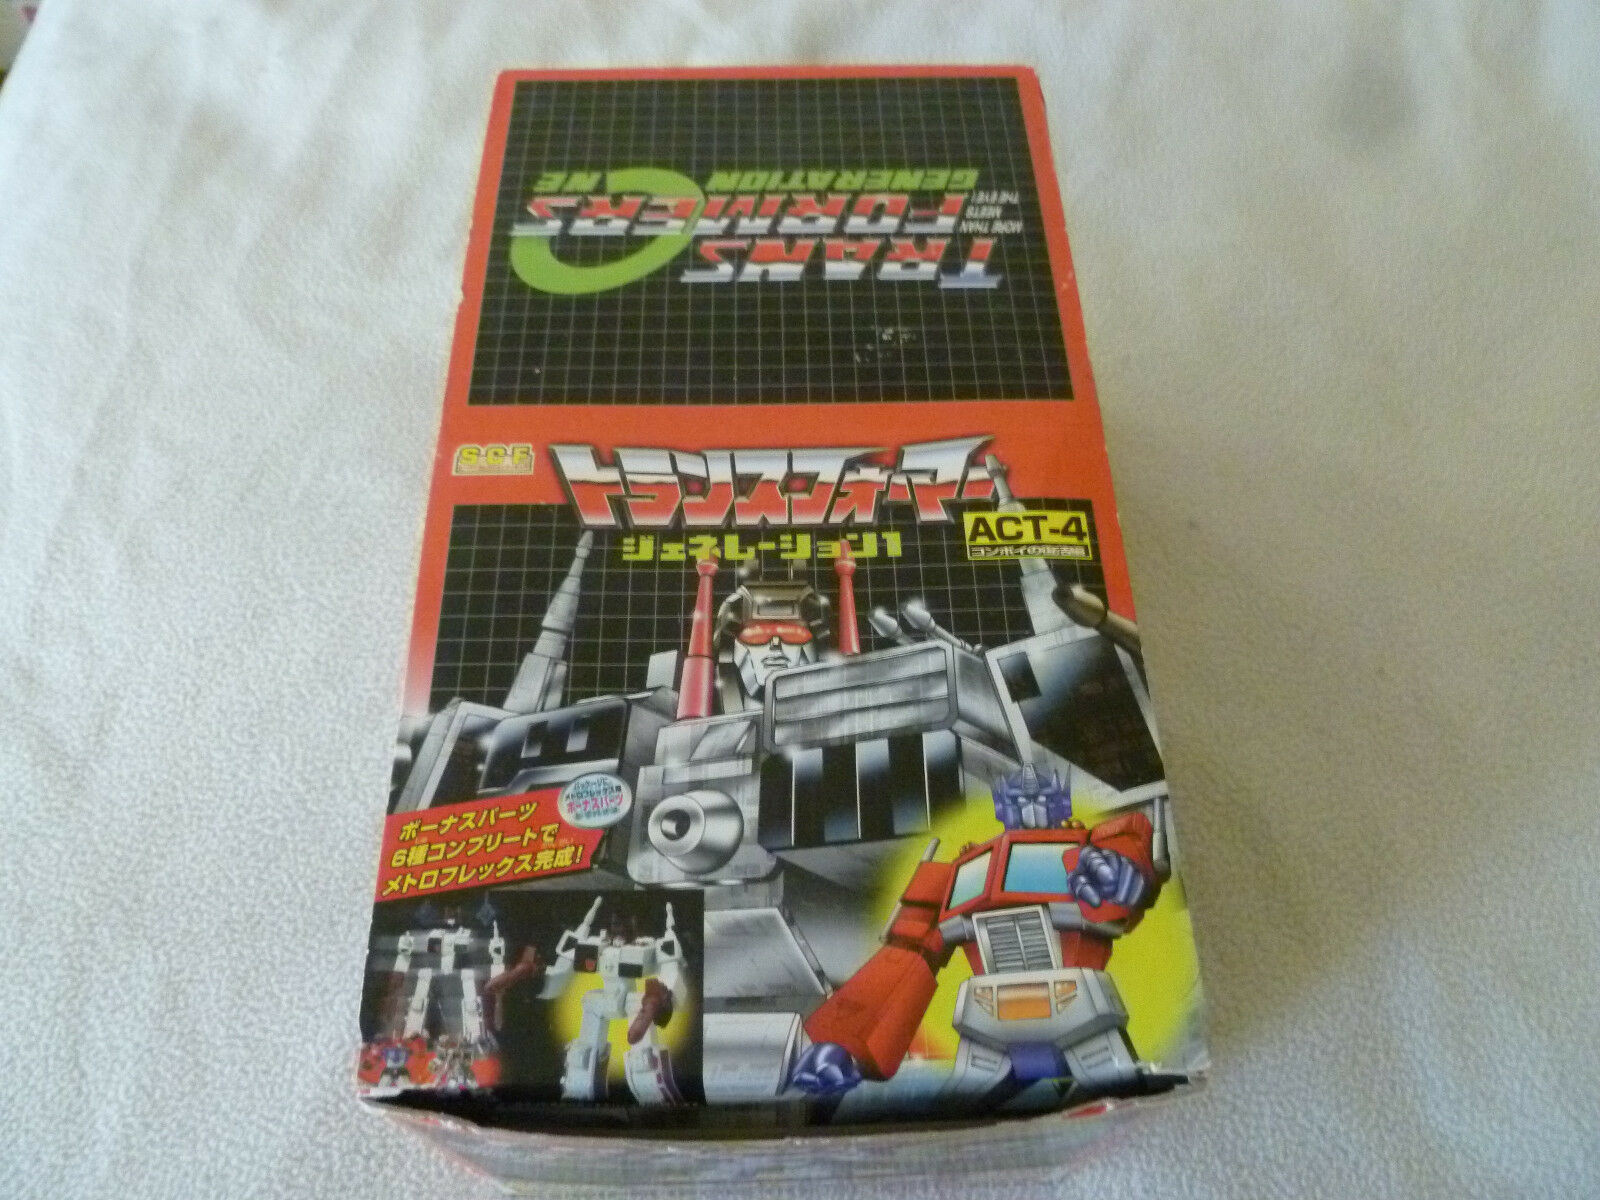 New sealed transformers case scf act 4 12 boxed figures generation one takara